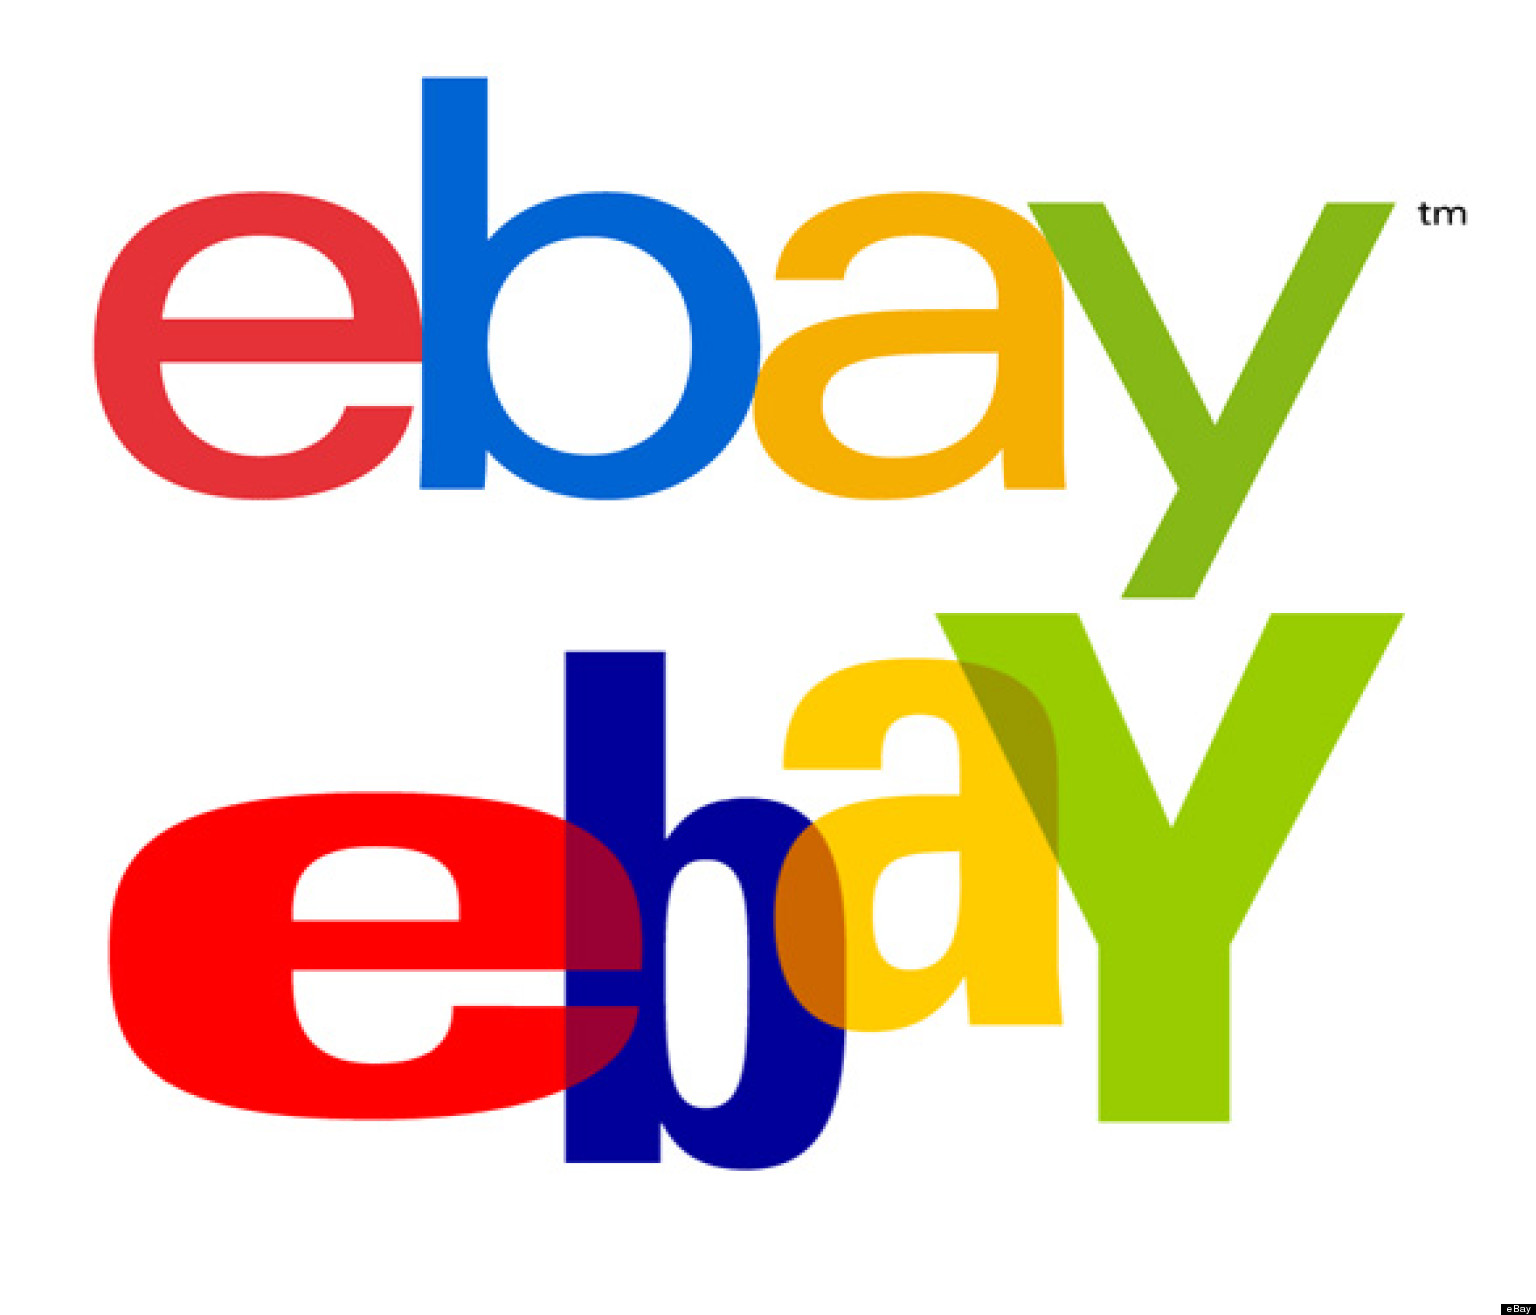 eBay New Logo: A Lot Like The Old Logo, But With A Cleaner